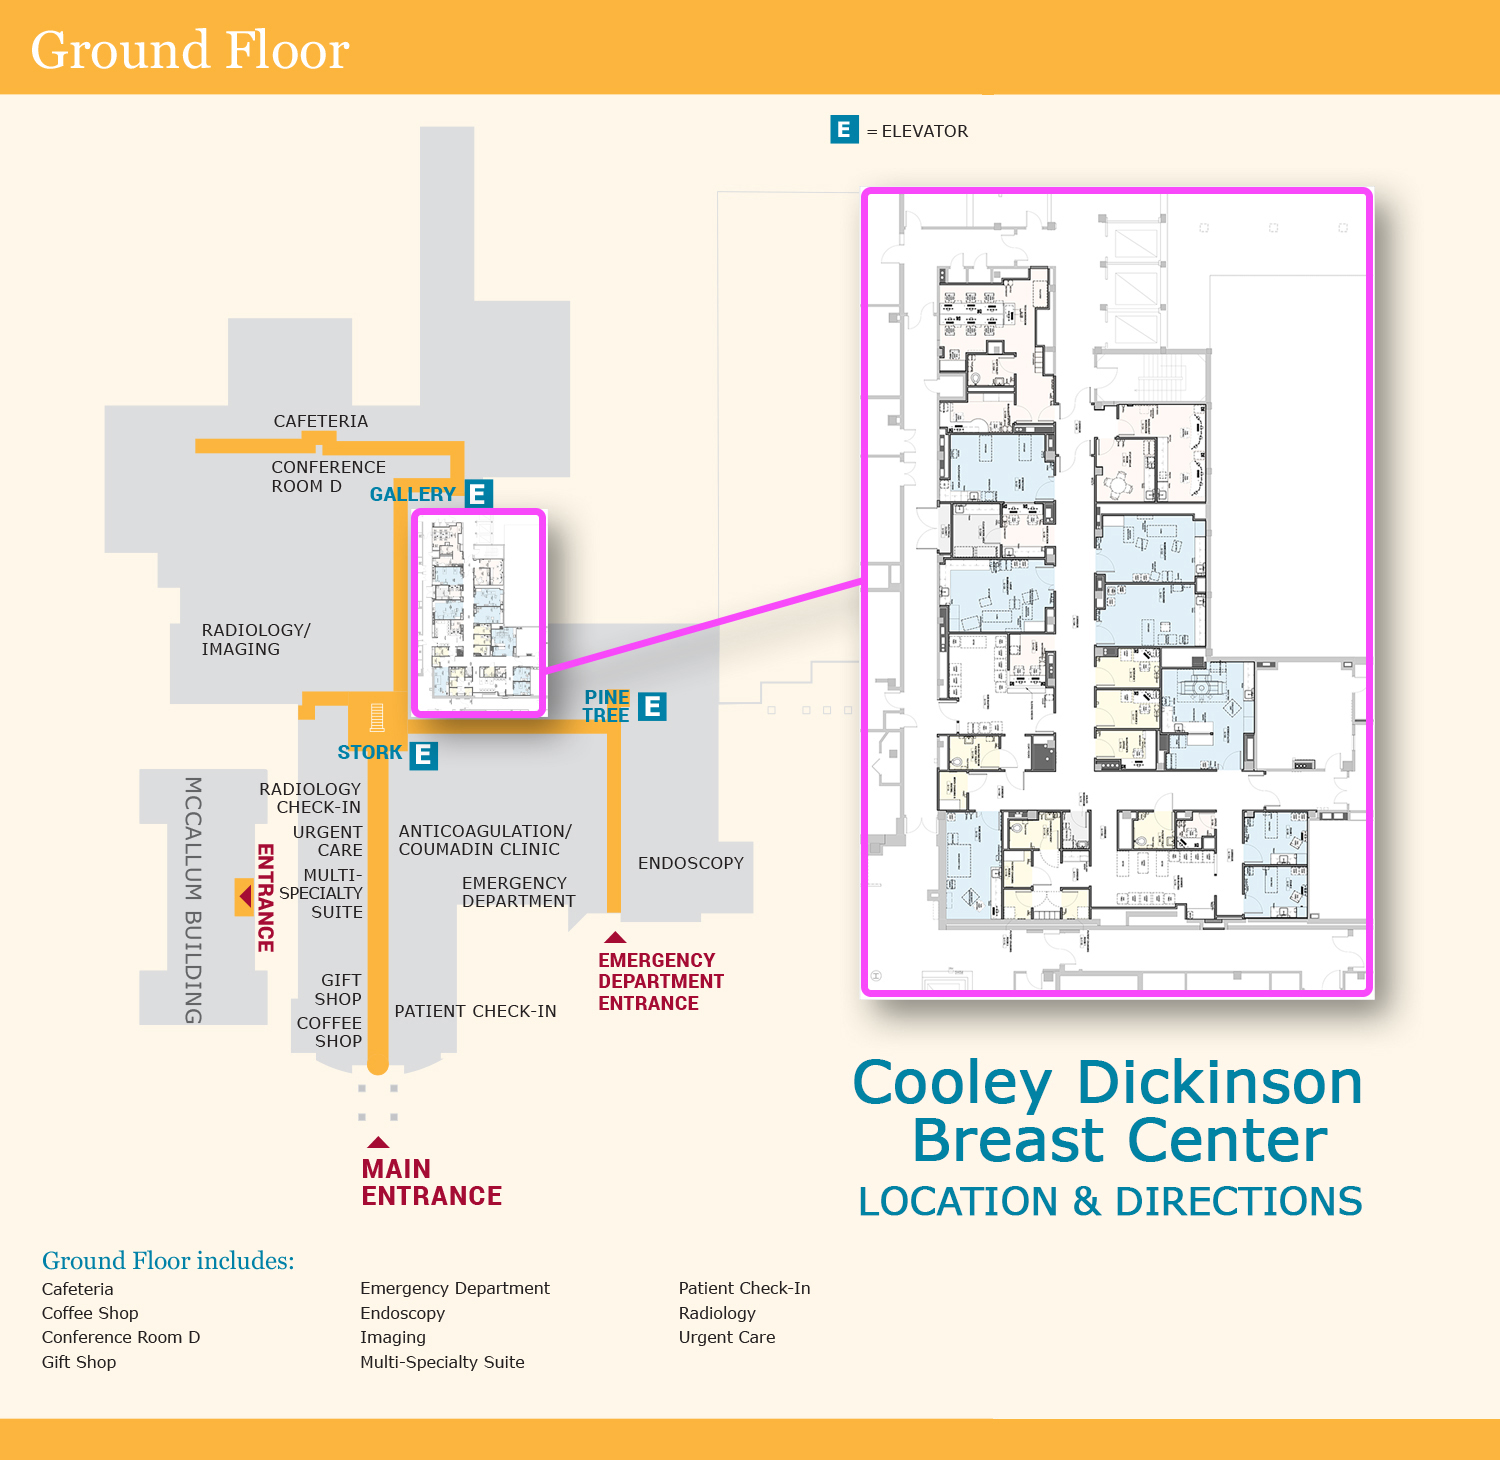 Give Comprehensive Breast Center at Cooley Dickinson Hospital